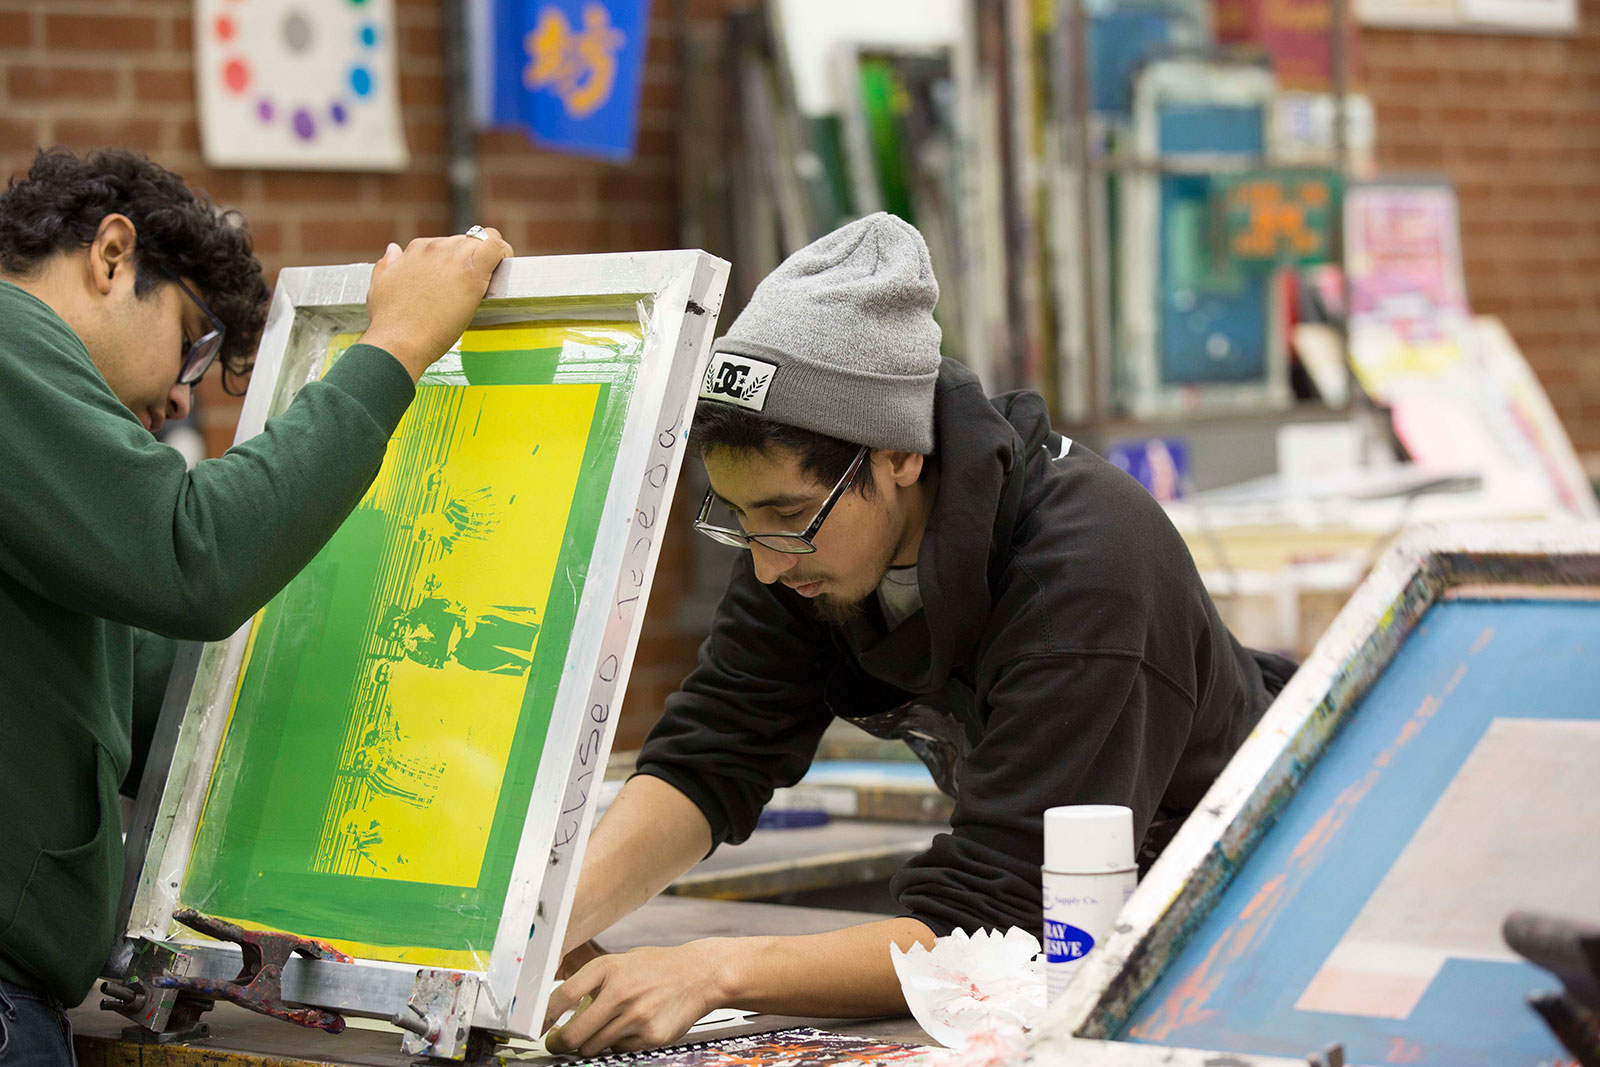 Students work during a screen printing course.